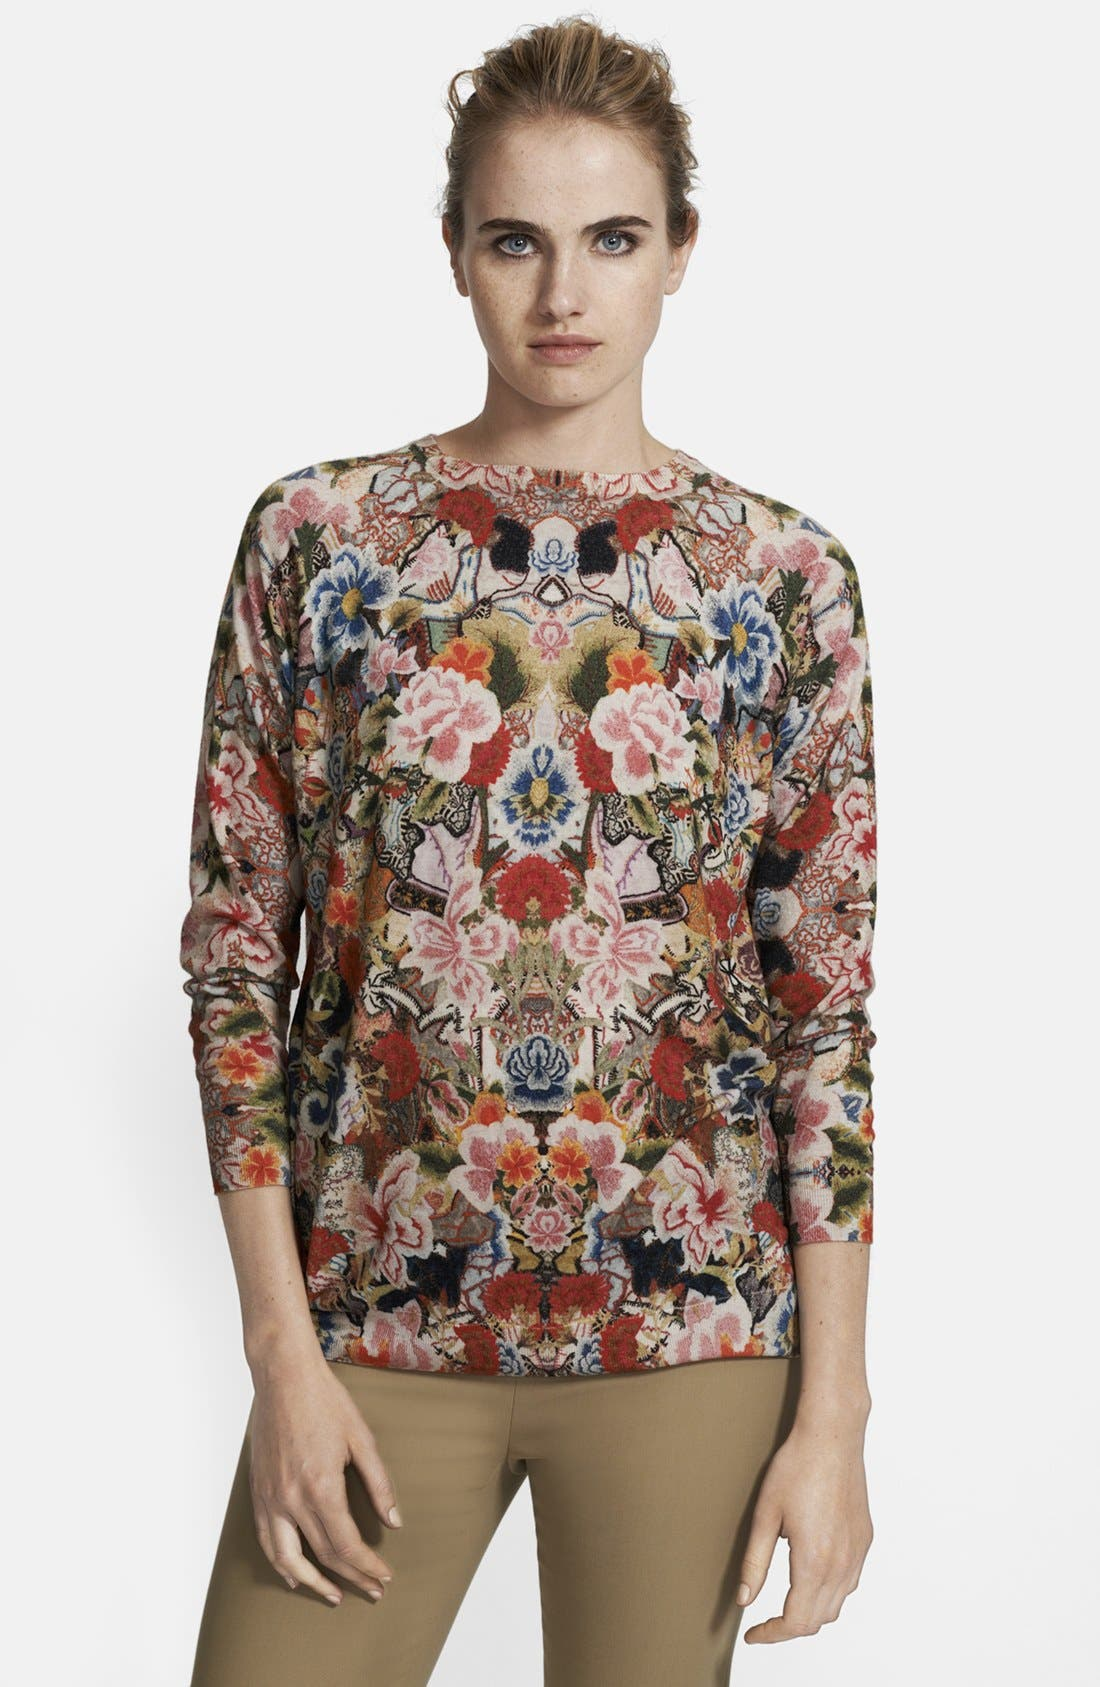 Main Image - Alexander McQueen Patchwork Floral Print Sweater